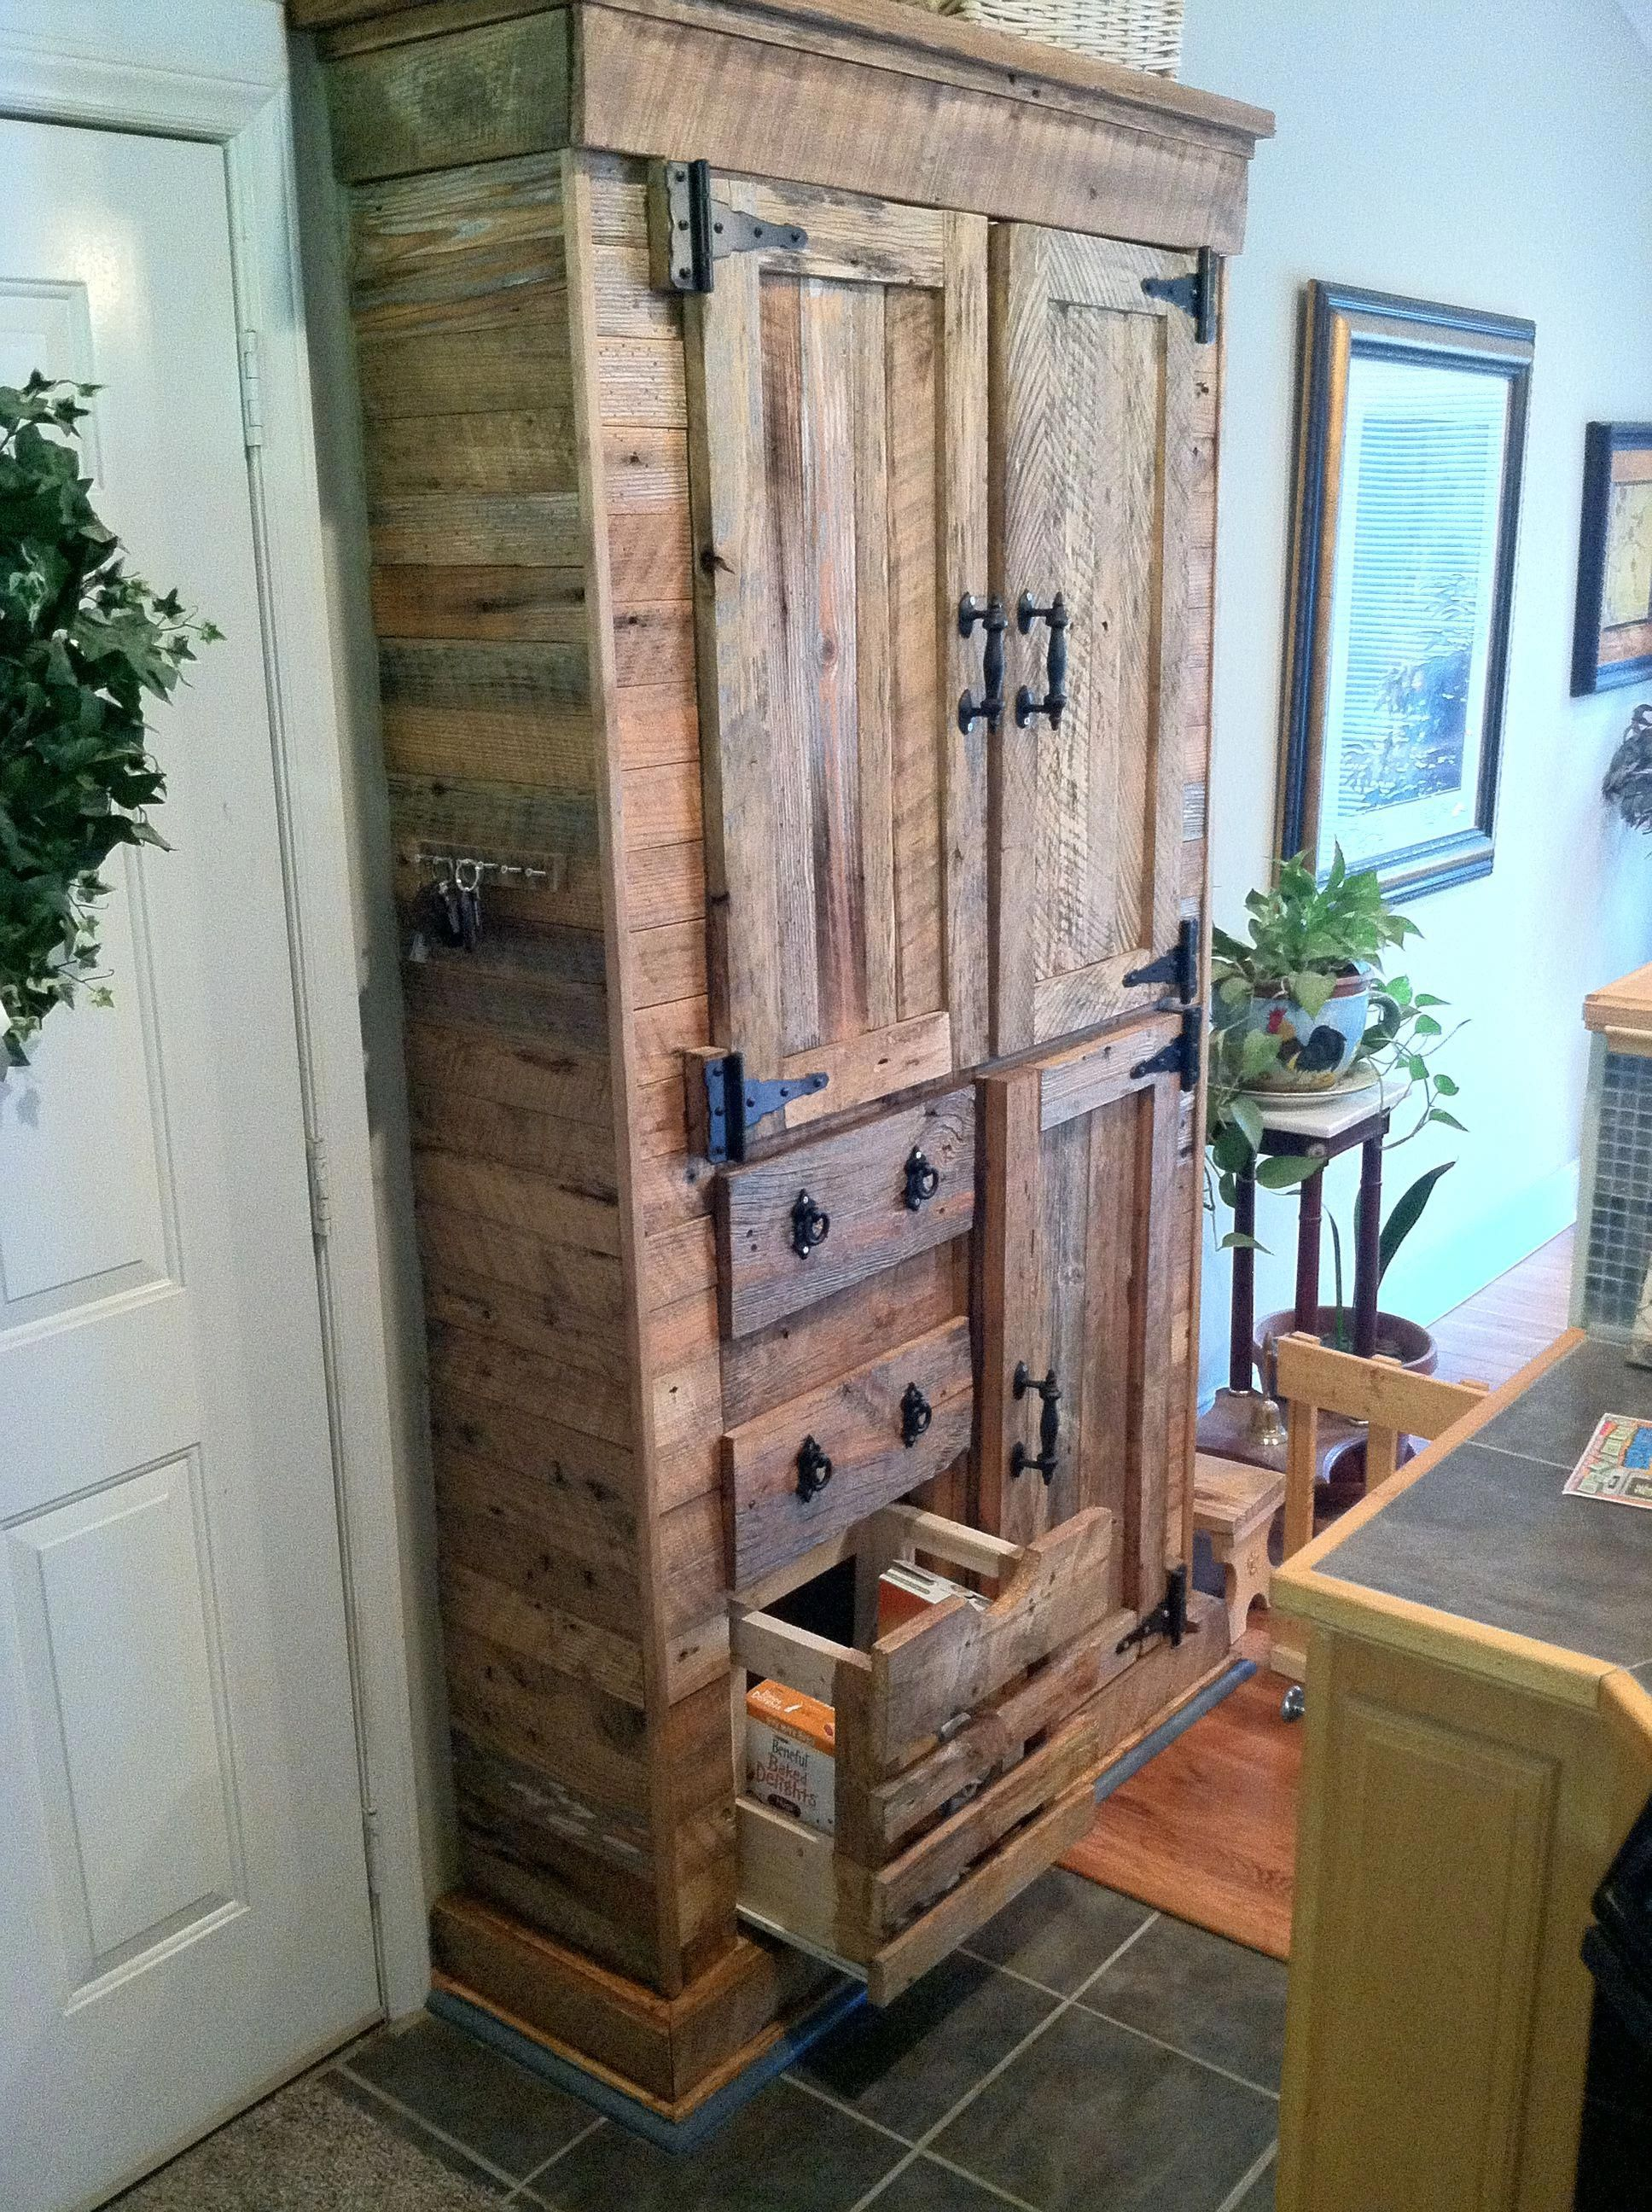 Best Pantry Do It Yourself Home Projects From Ana White 640 x 480